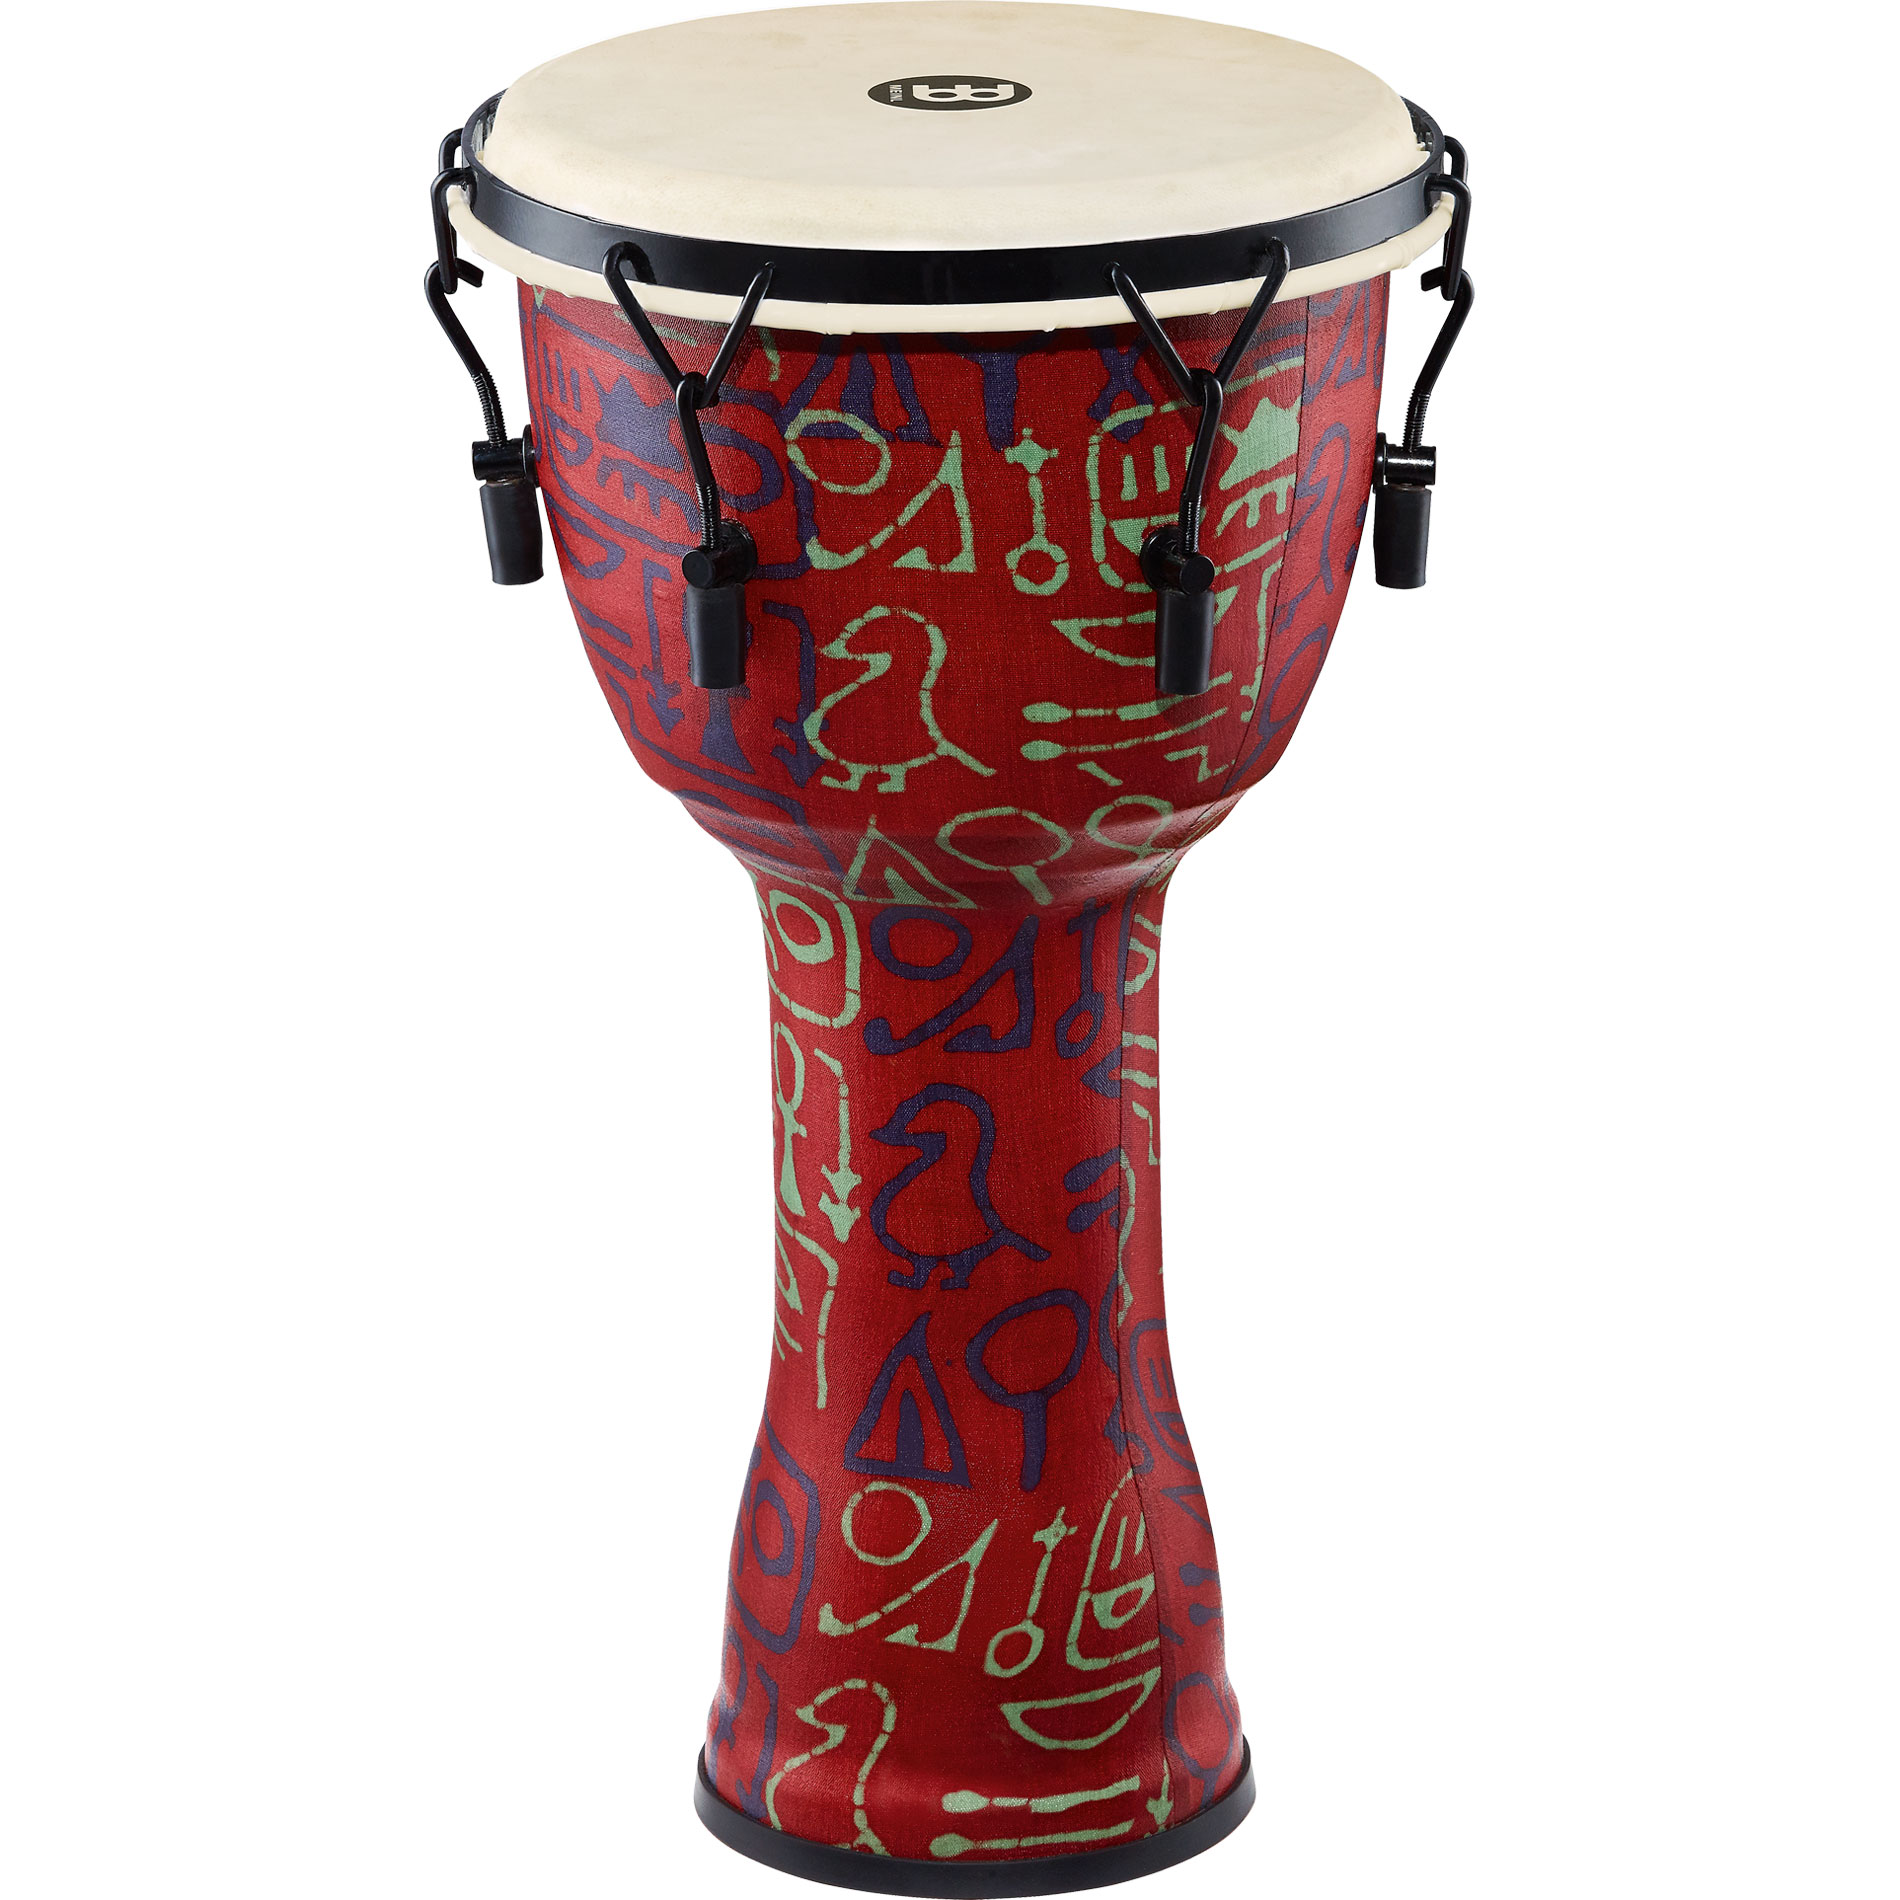 "Meinl 10"" Mechanically-Tuned Travel Djembe in Pharaoh"